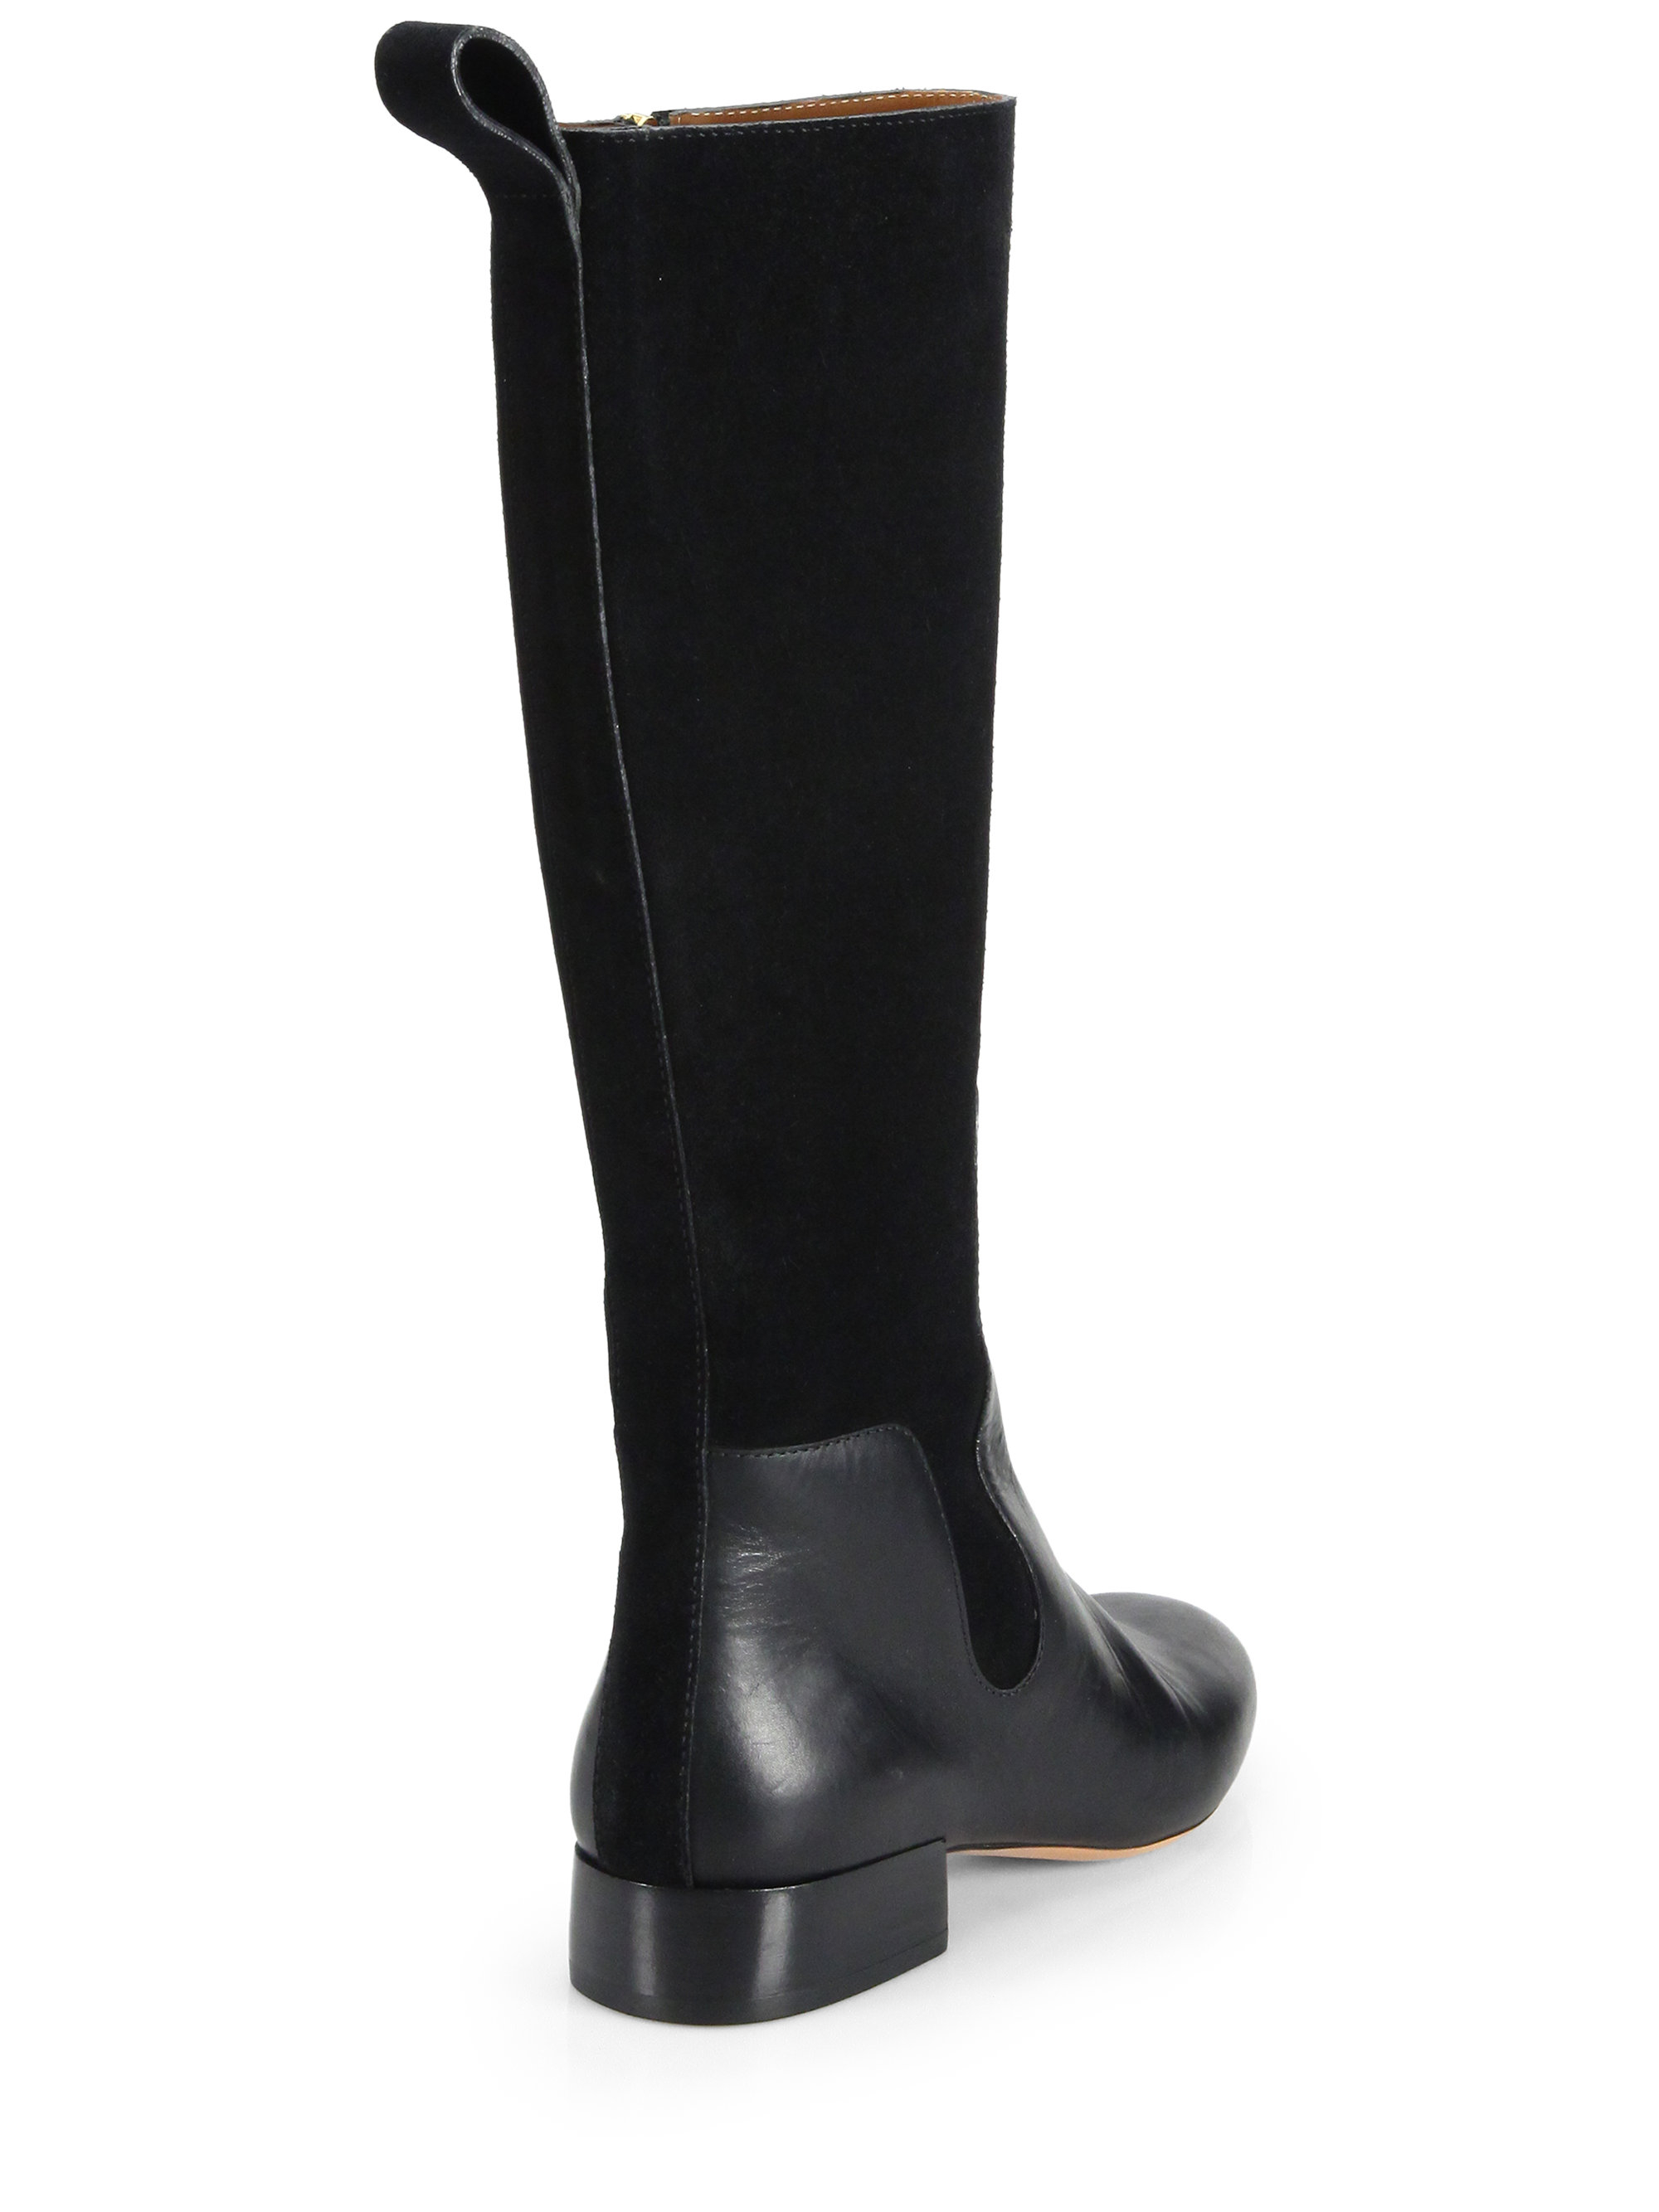 Chloé Leather & Suede Knee-High Boots in Black | Lyst